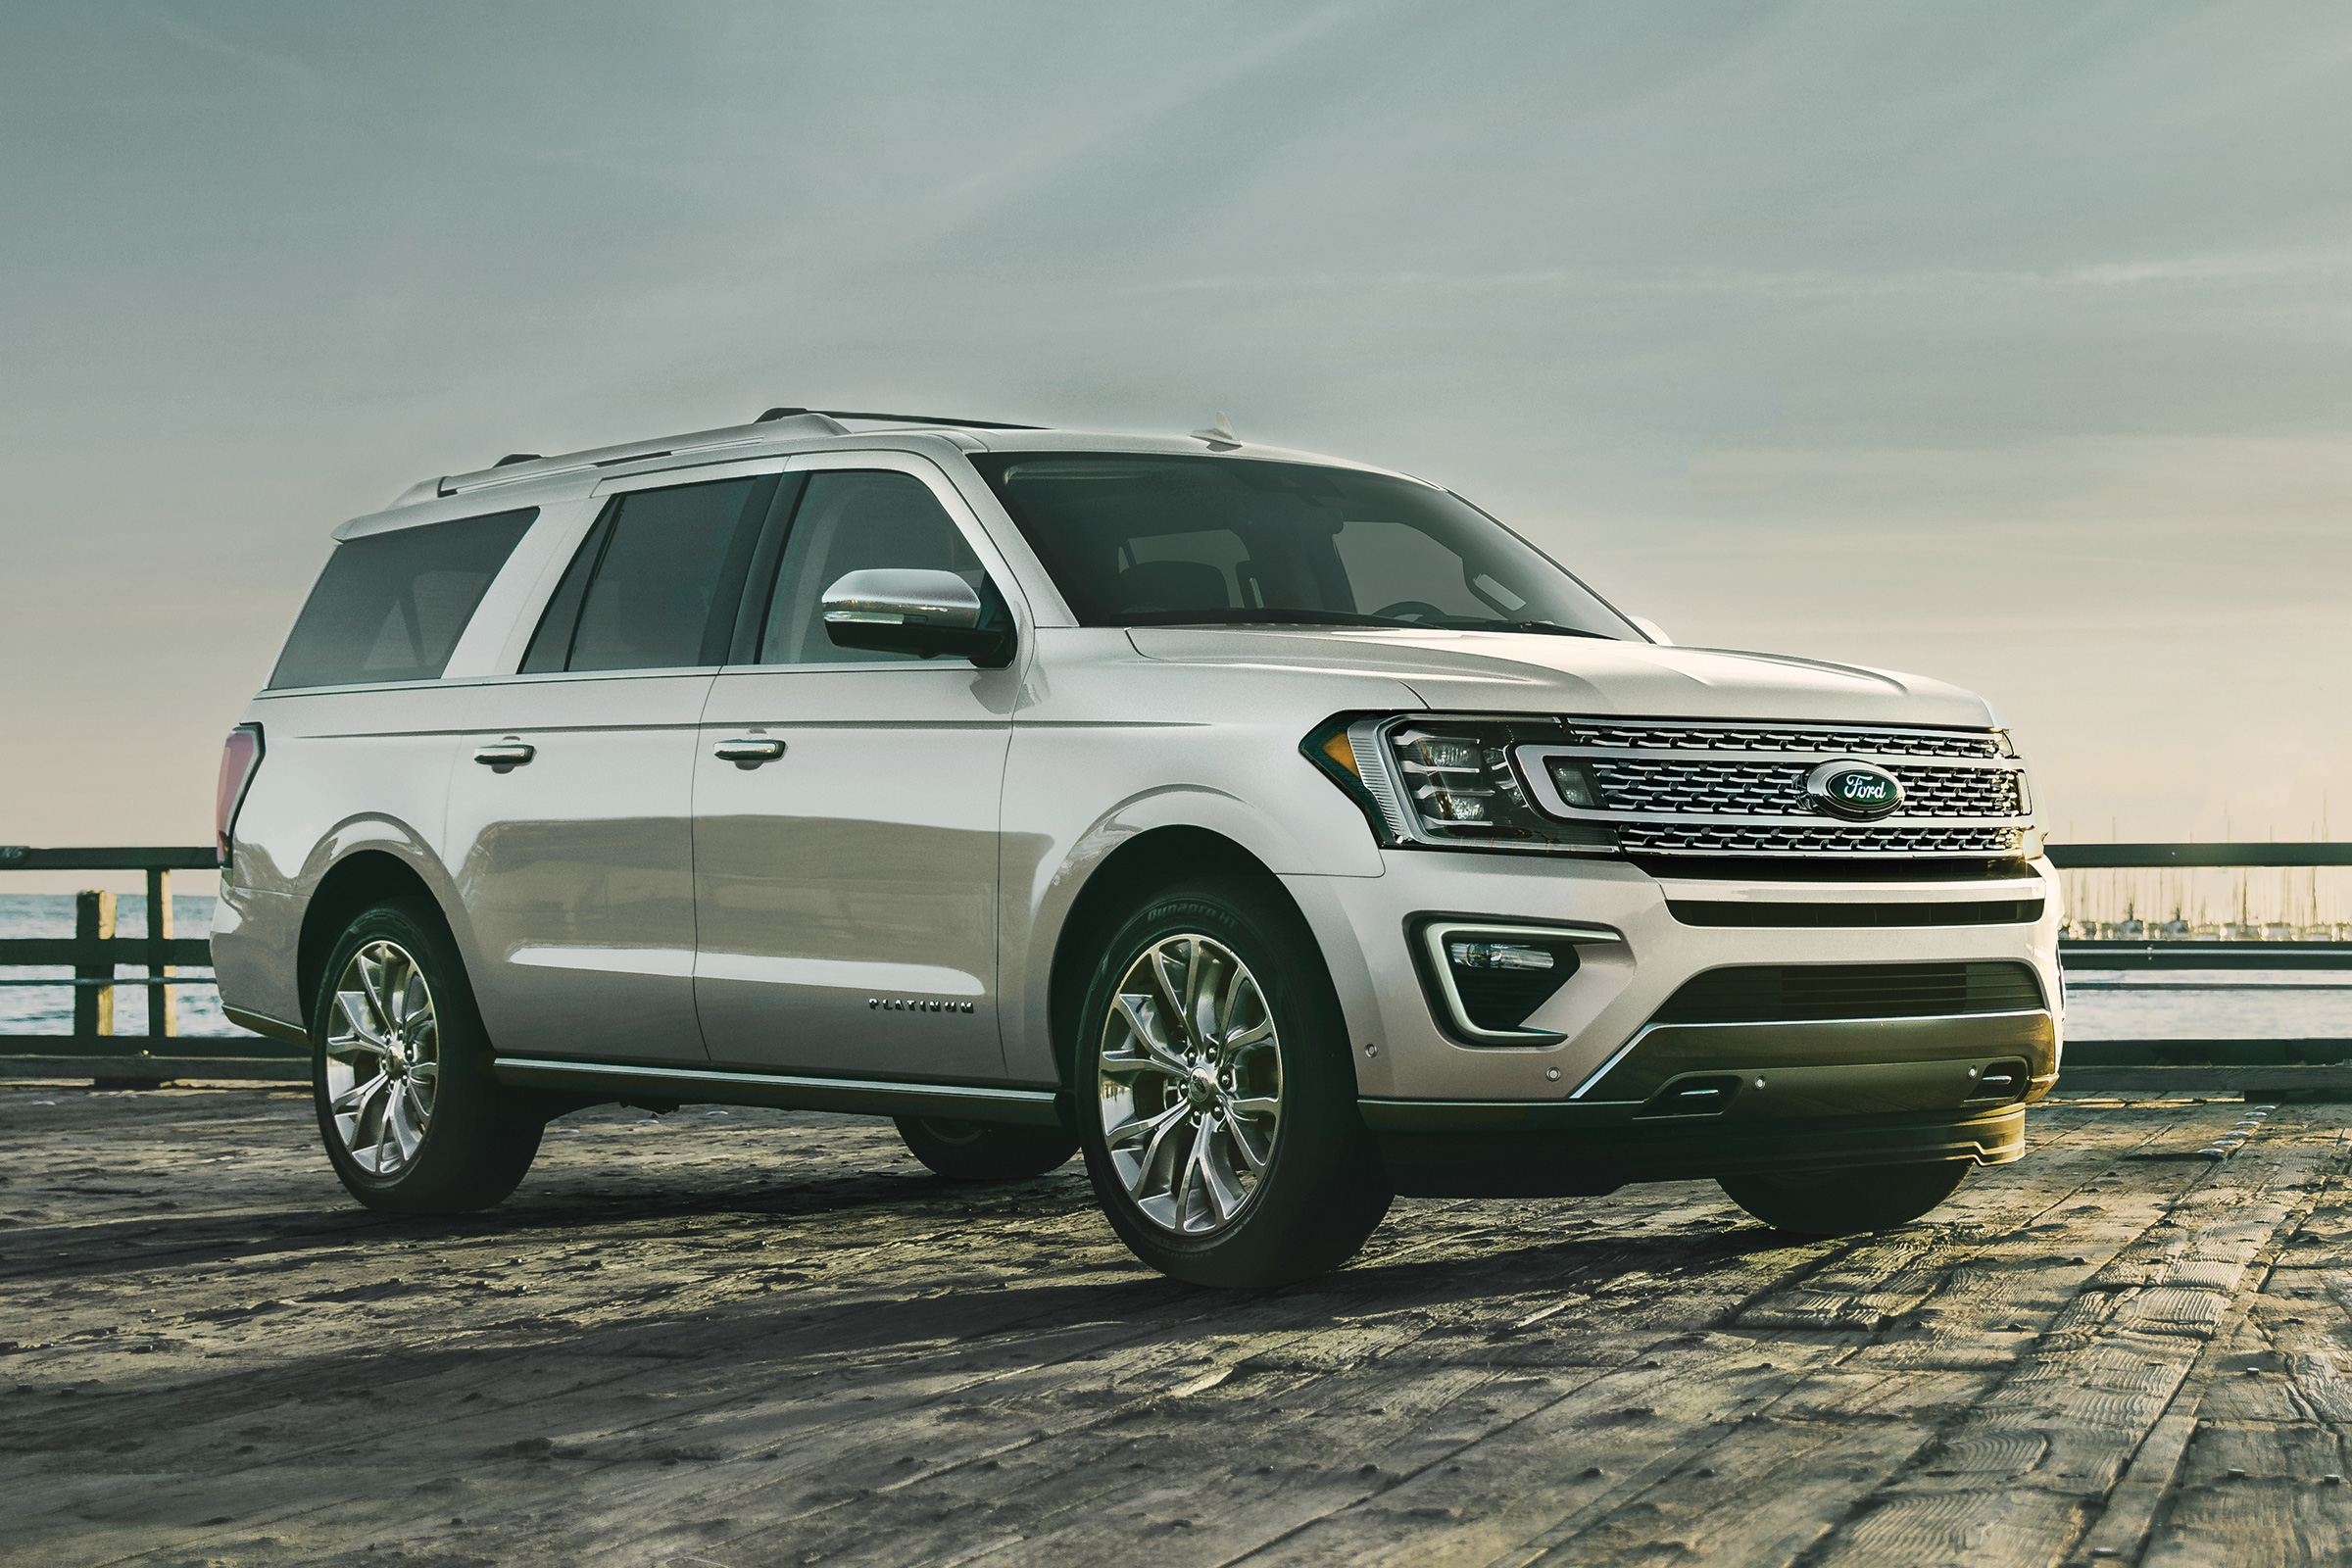 Ford S New Expedition Suv Is The Epitome Of American Motoring With A Surprise Or Two Up Its Sleeve Evo